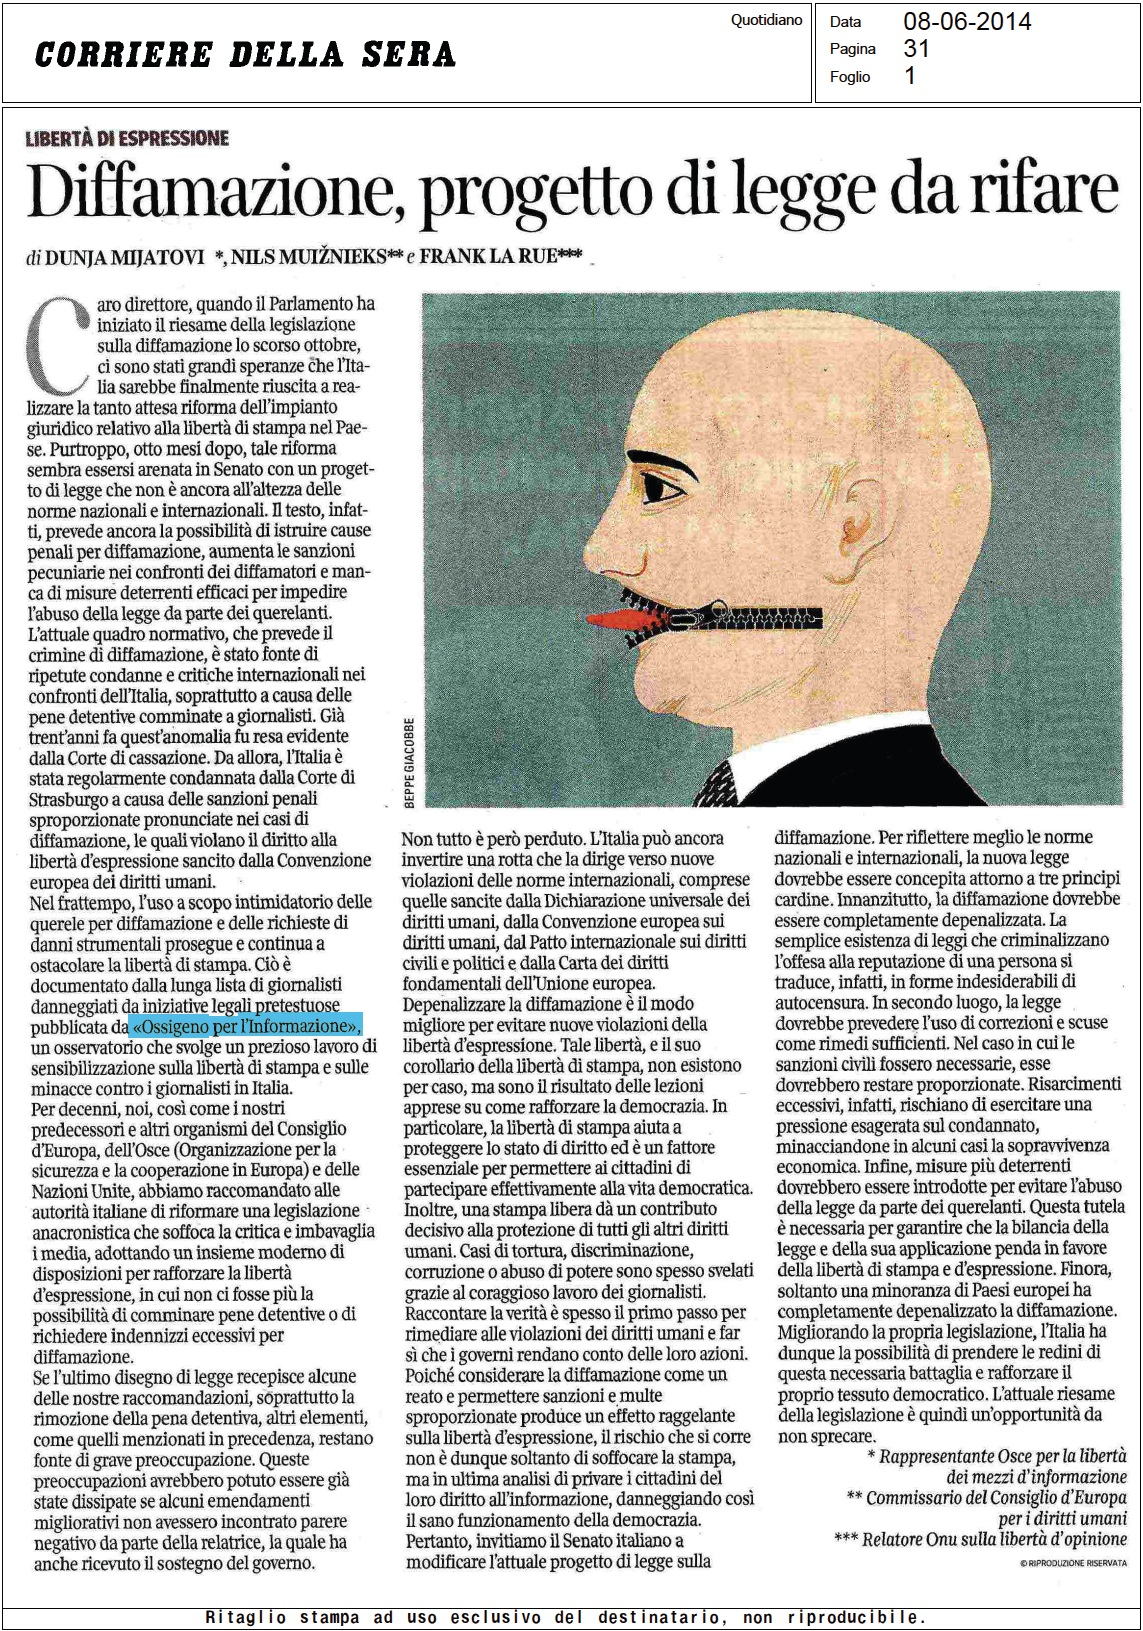 opinon-article-defamation-in-italy.jpg